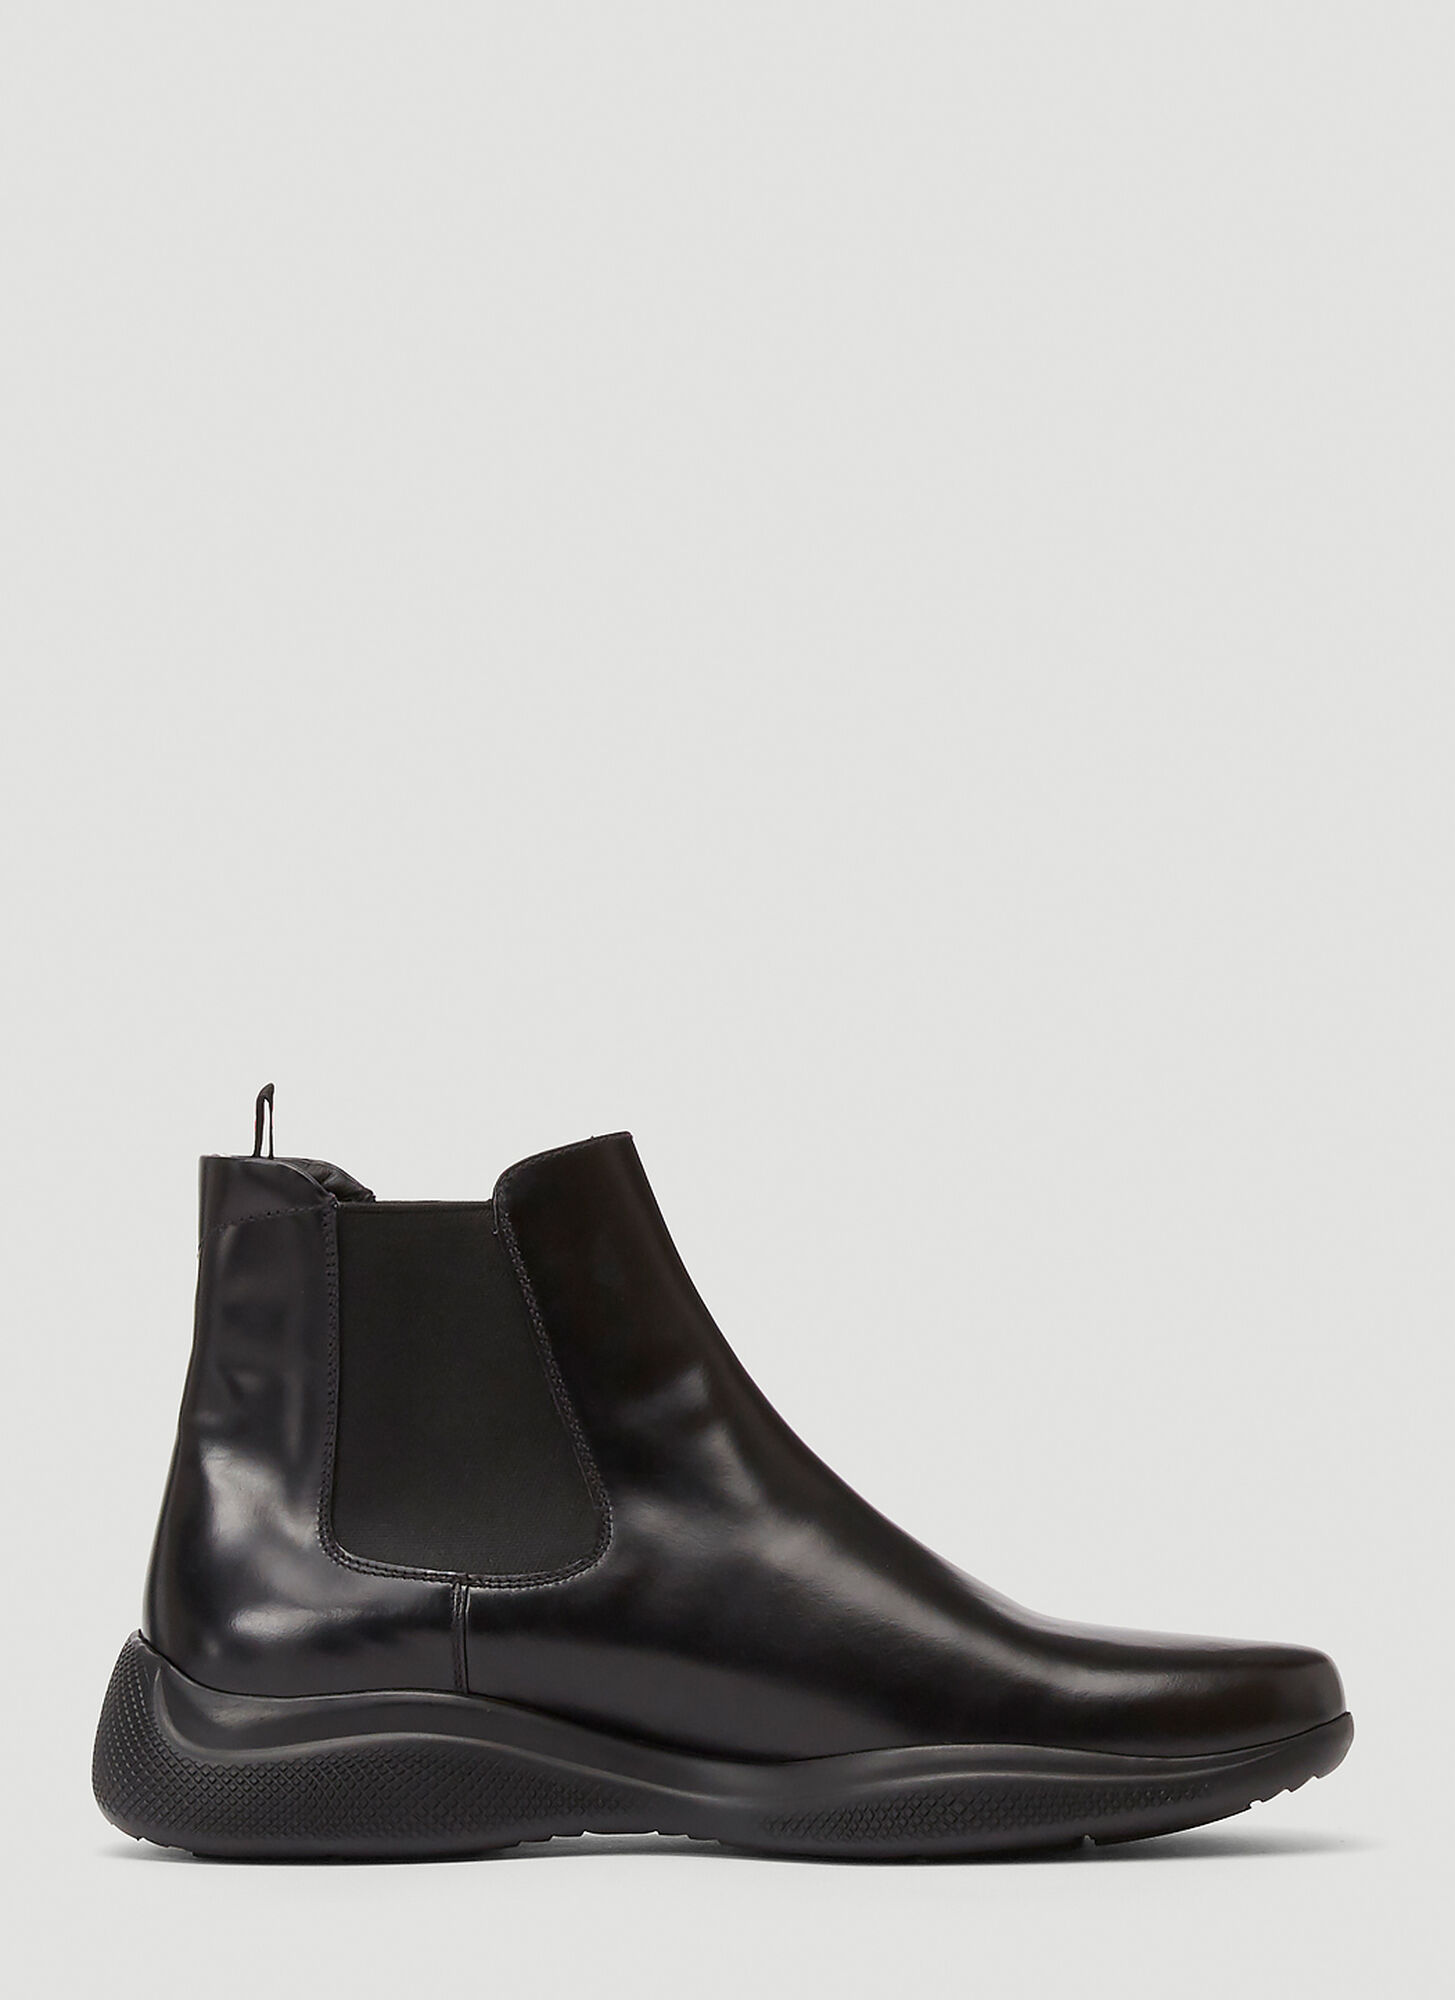 Prada Americas Cup Leather Boots